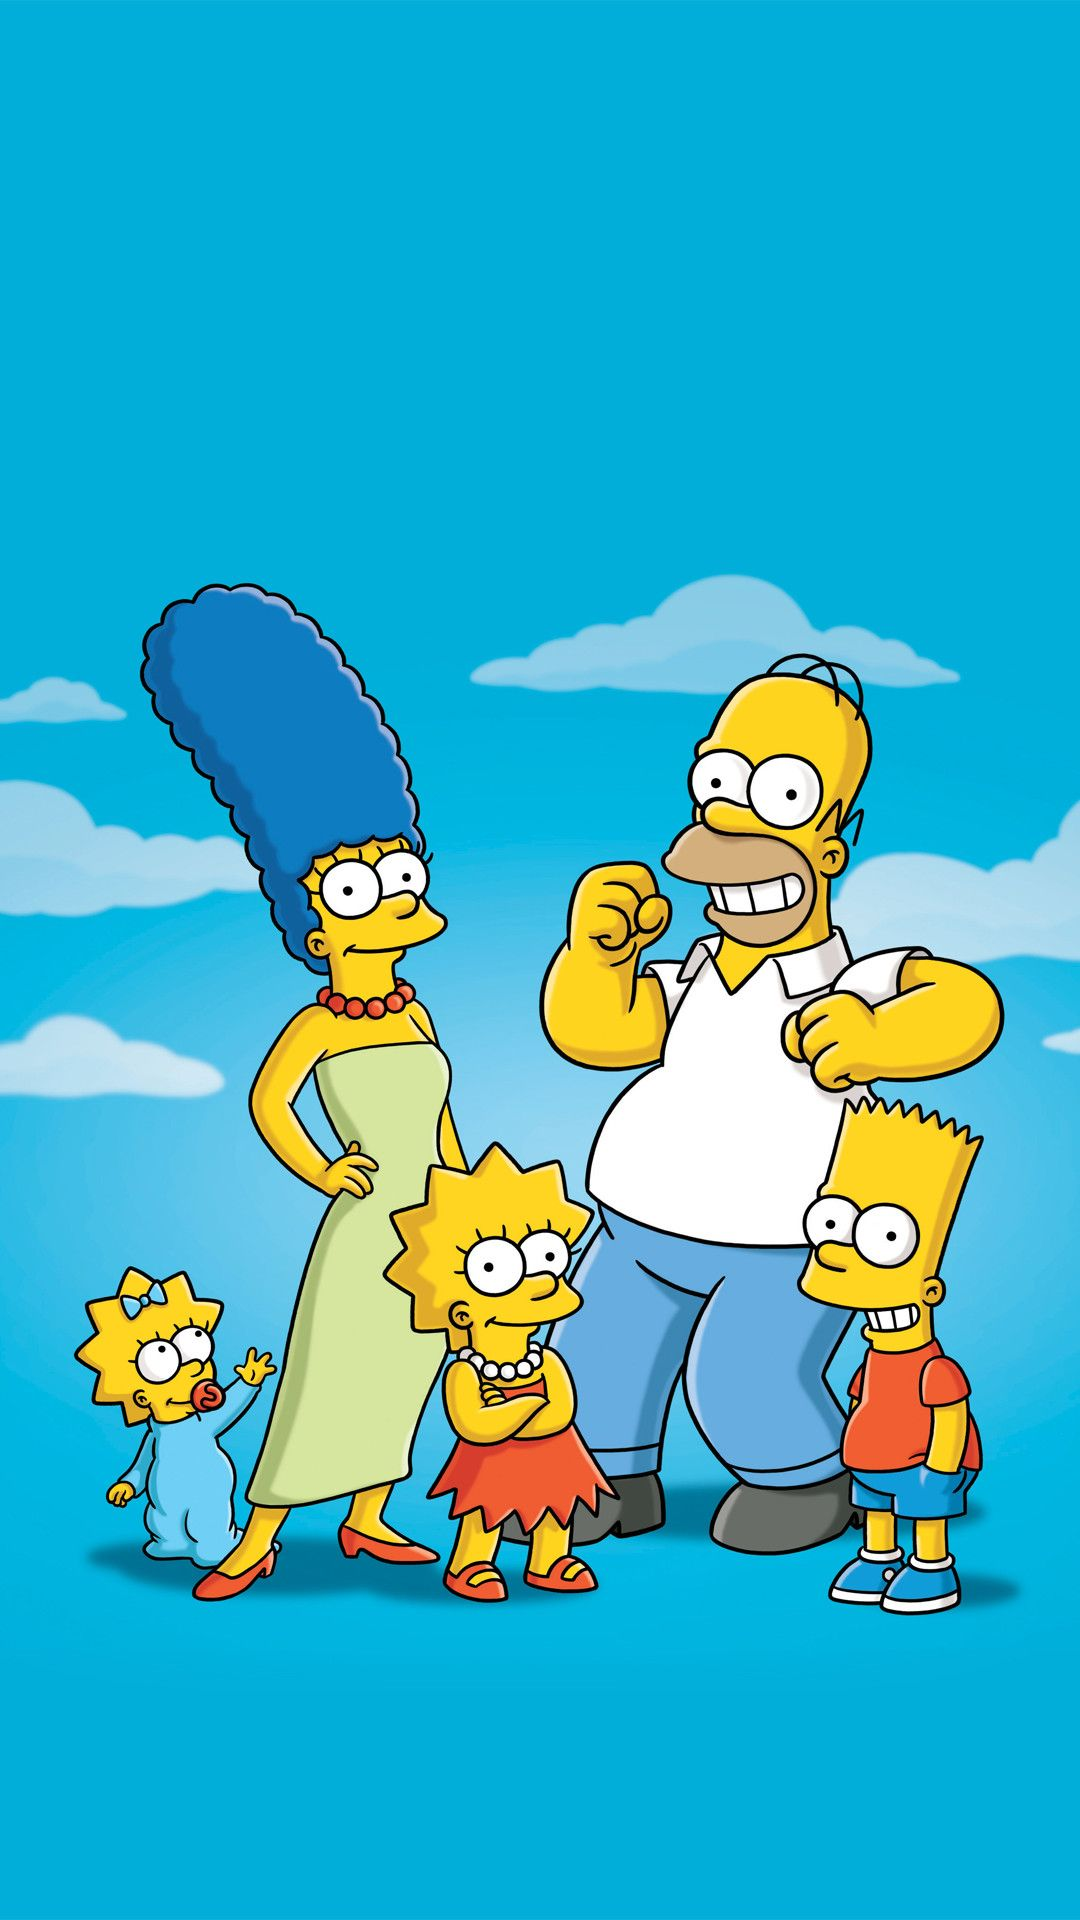 1080x1920 73+ The Simpson Wallpapers on WallpaperPlay